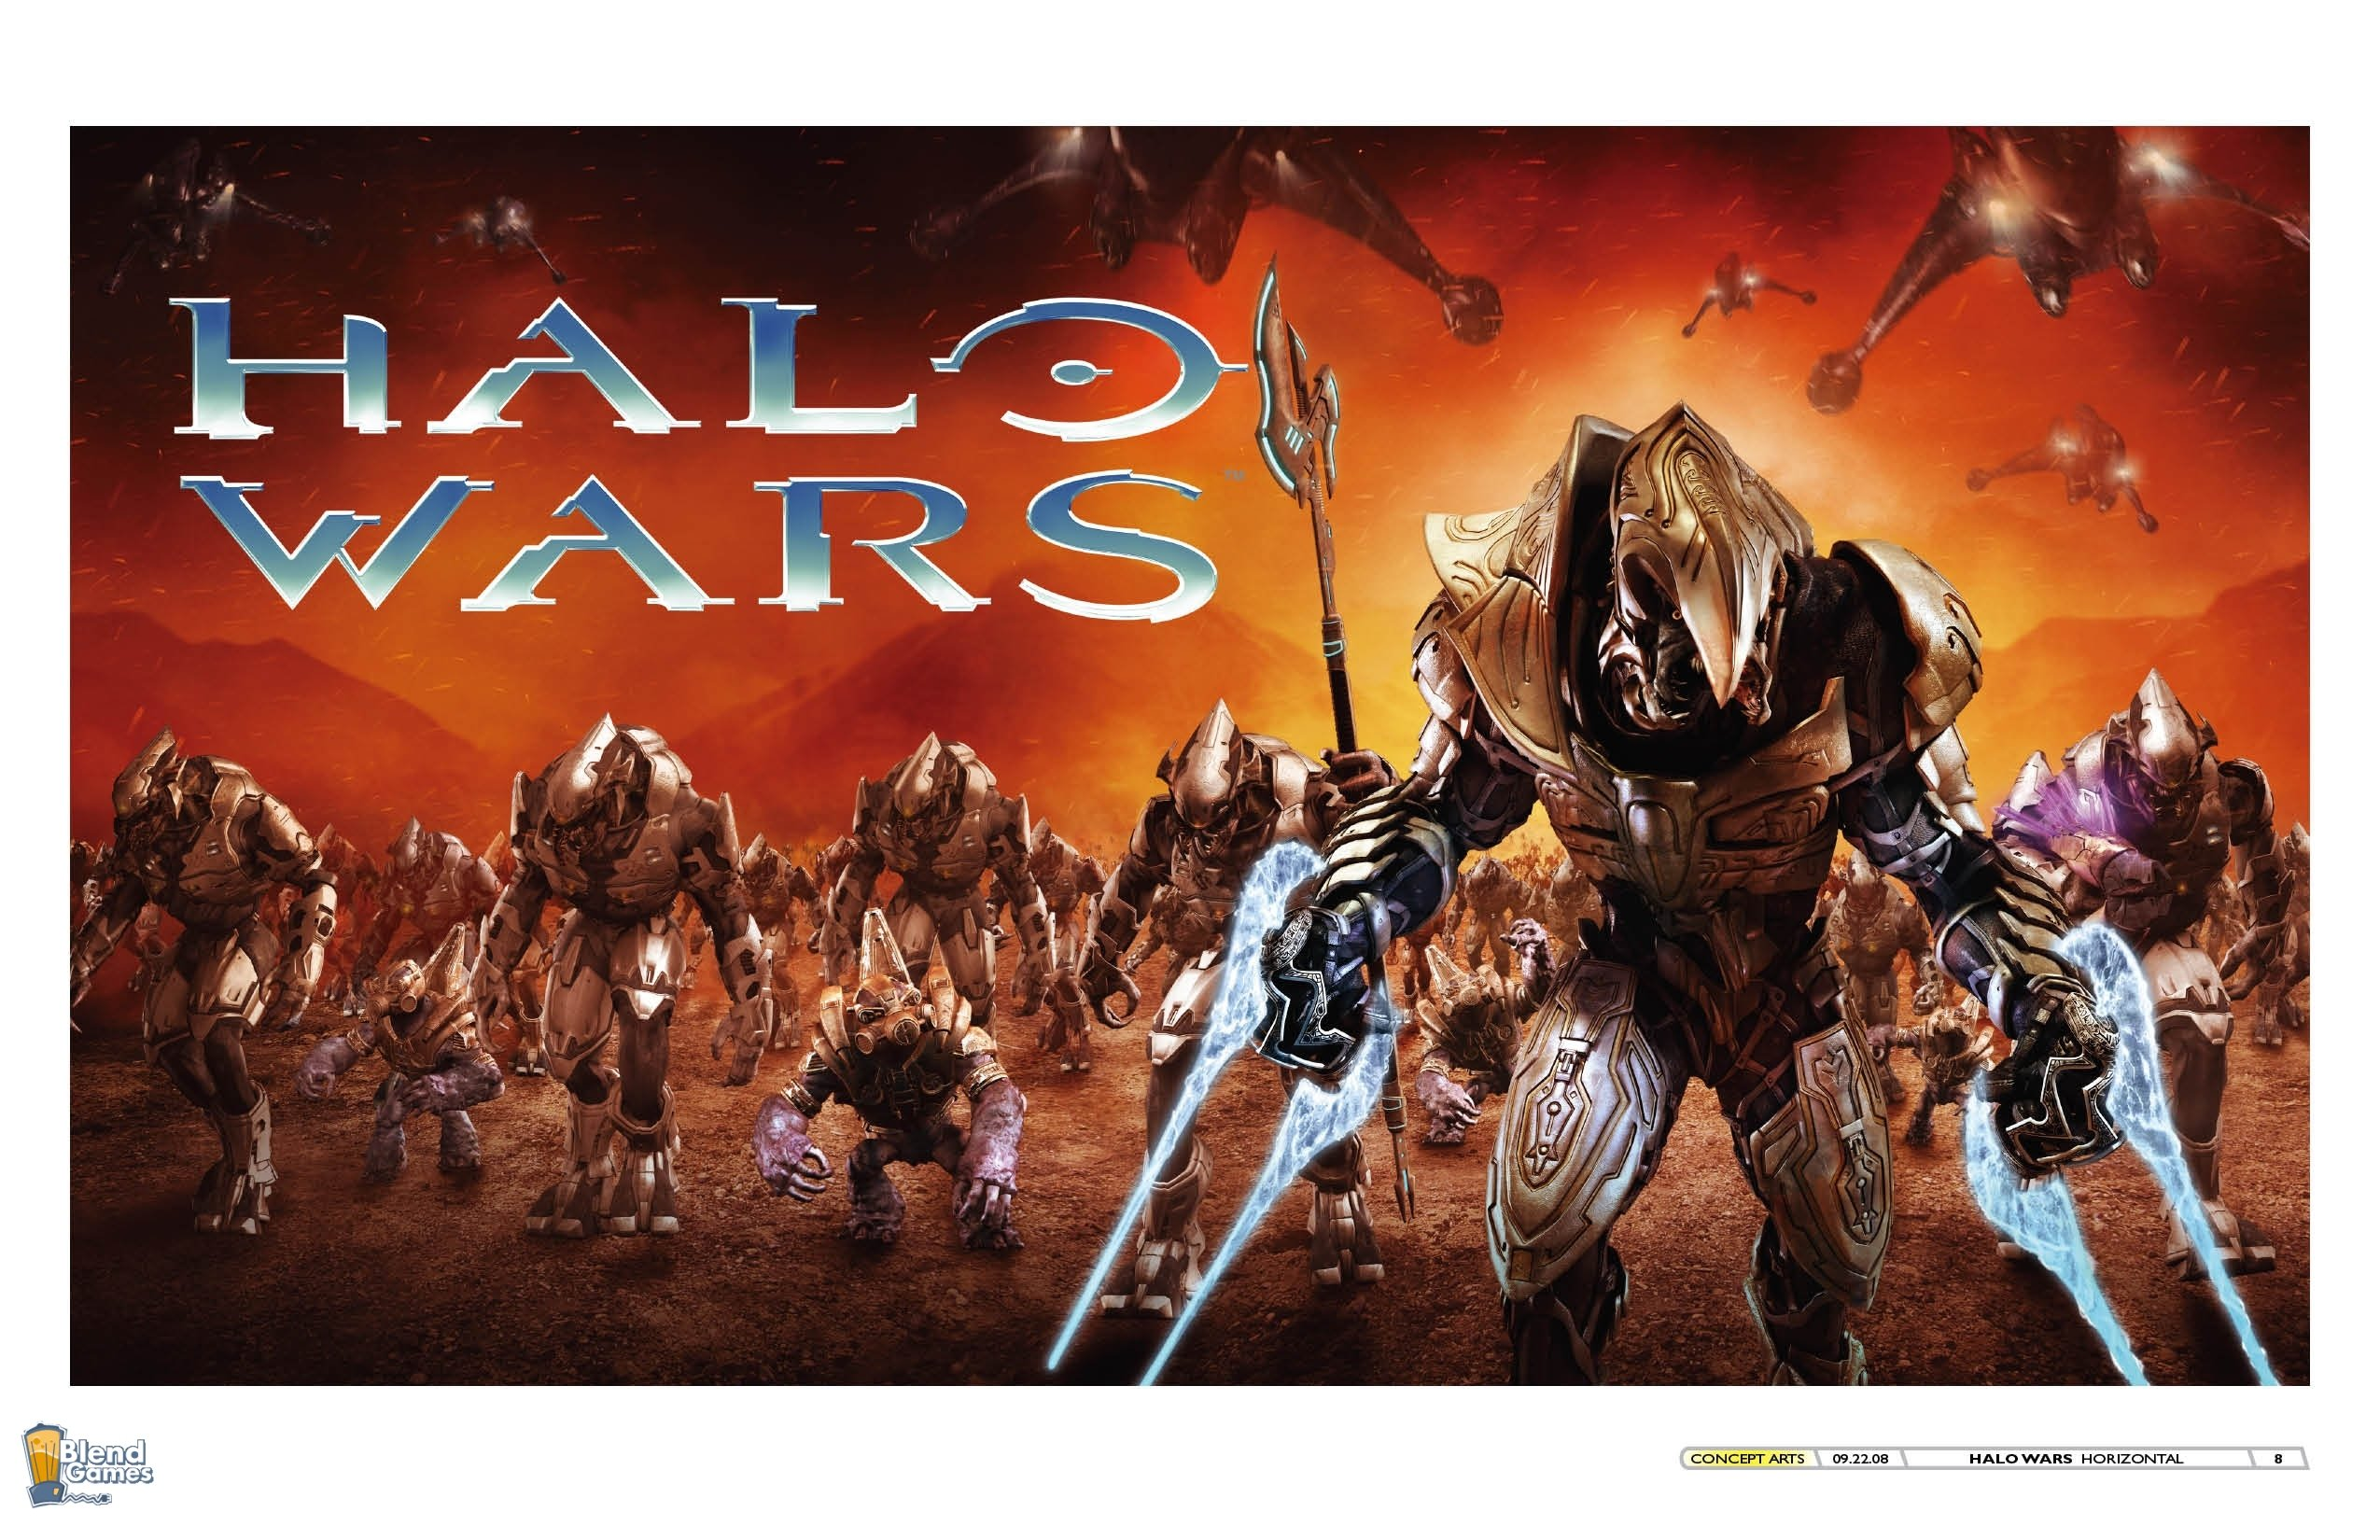 Halo wars new artwork and wallpapers - Wallpaper halo wars ...